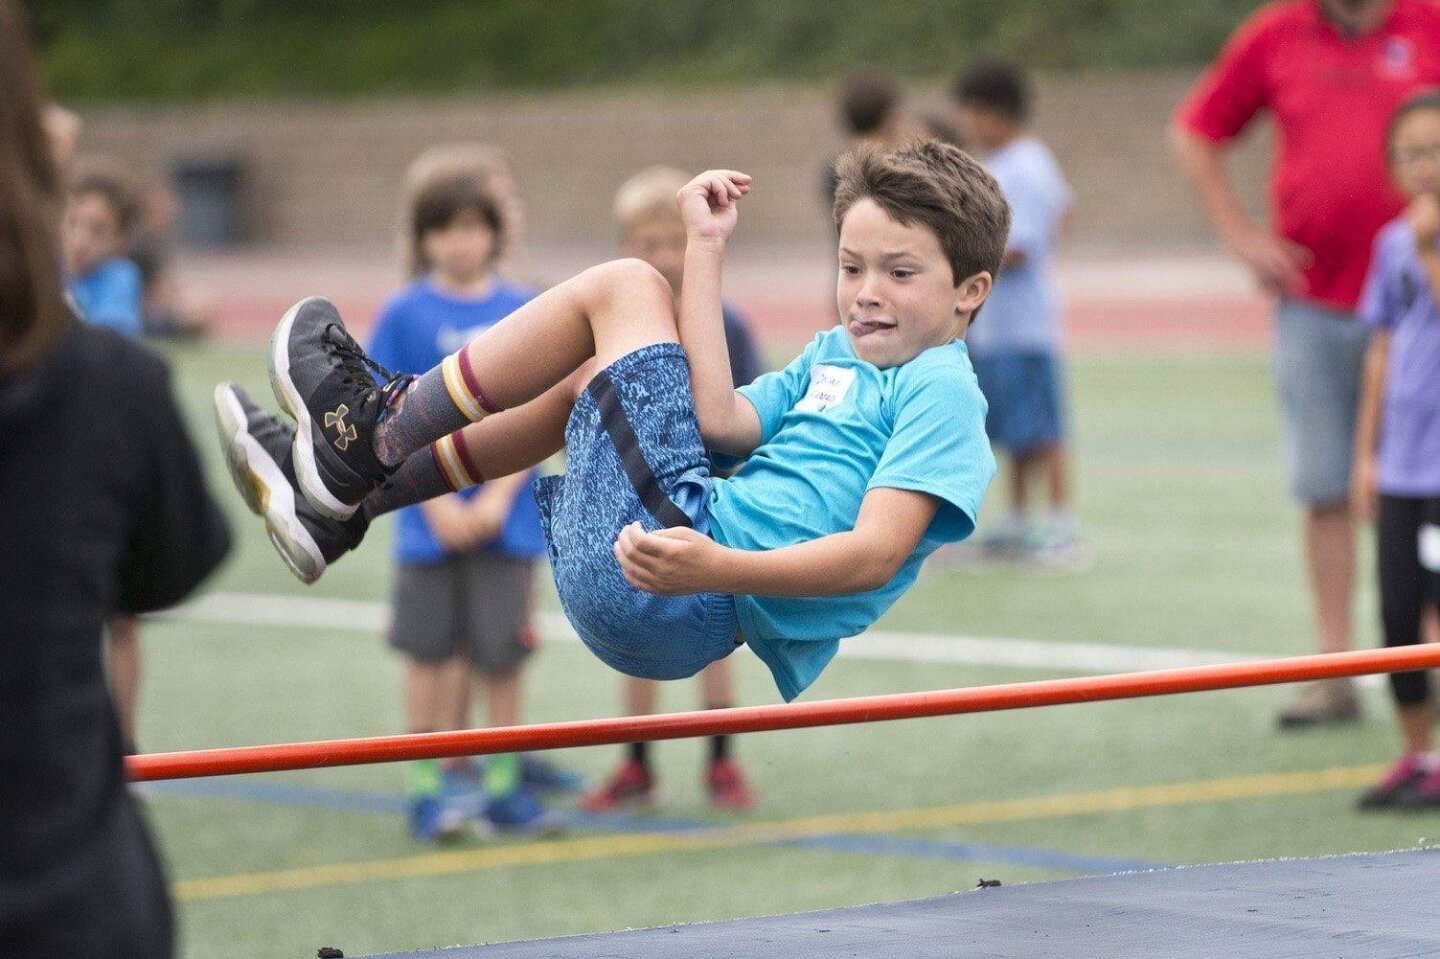 High jump at Field Day